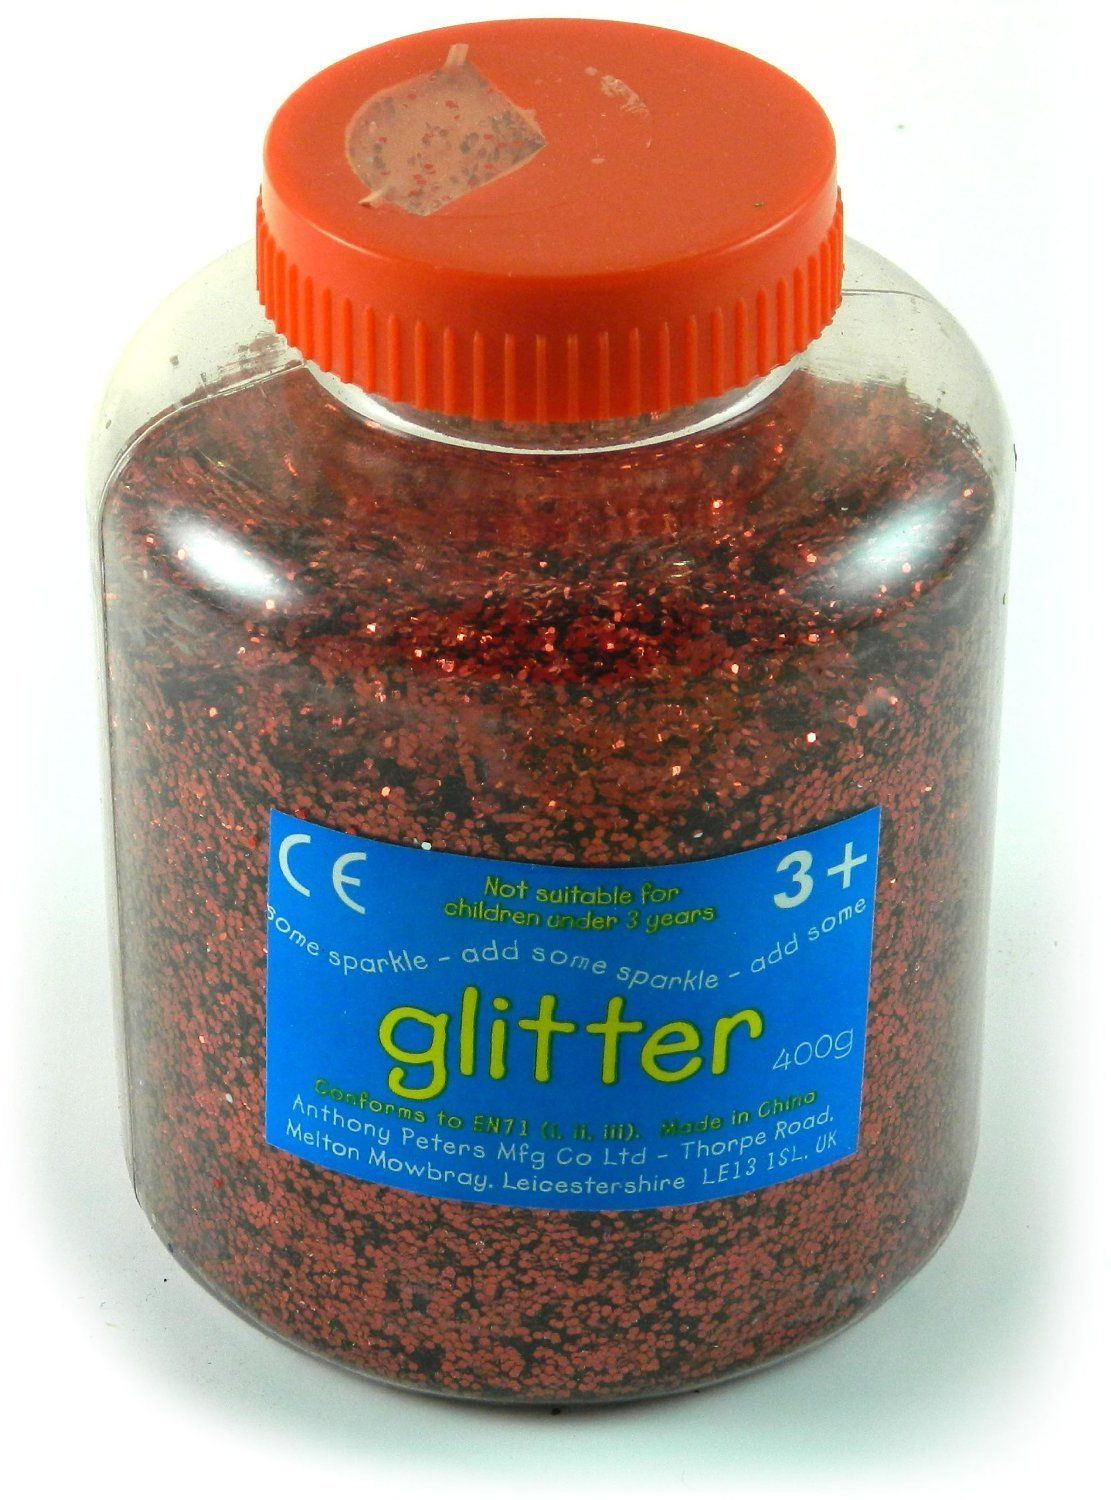 Red Art and Craft Glitter 400 g Tub